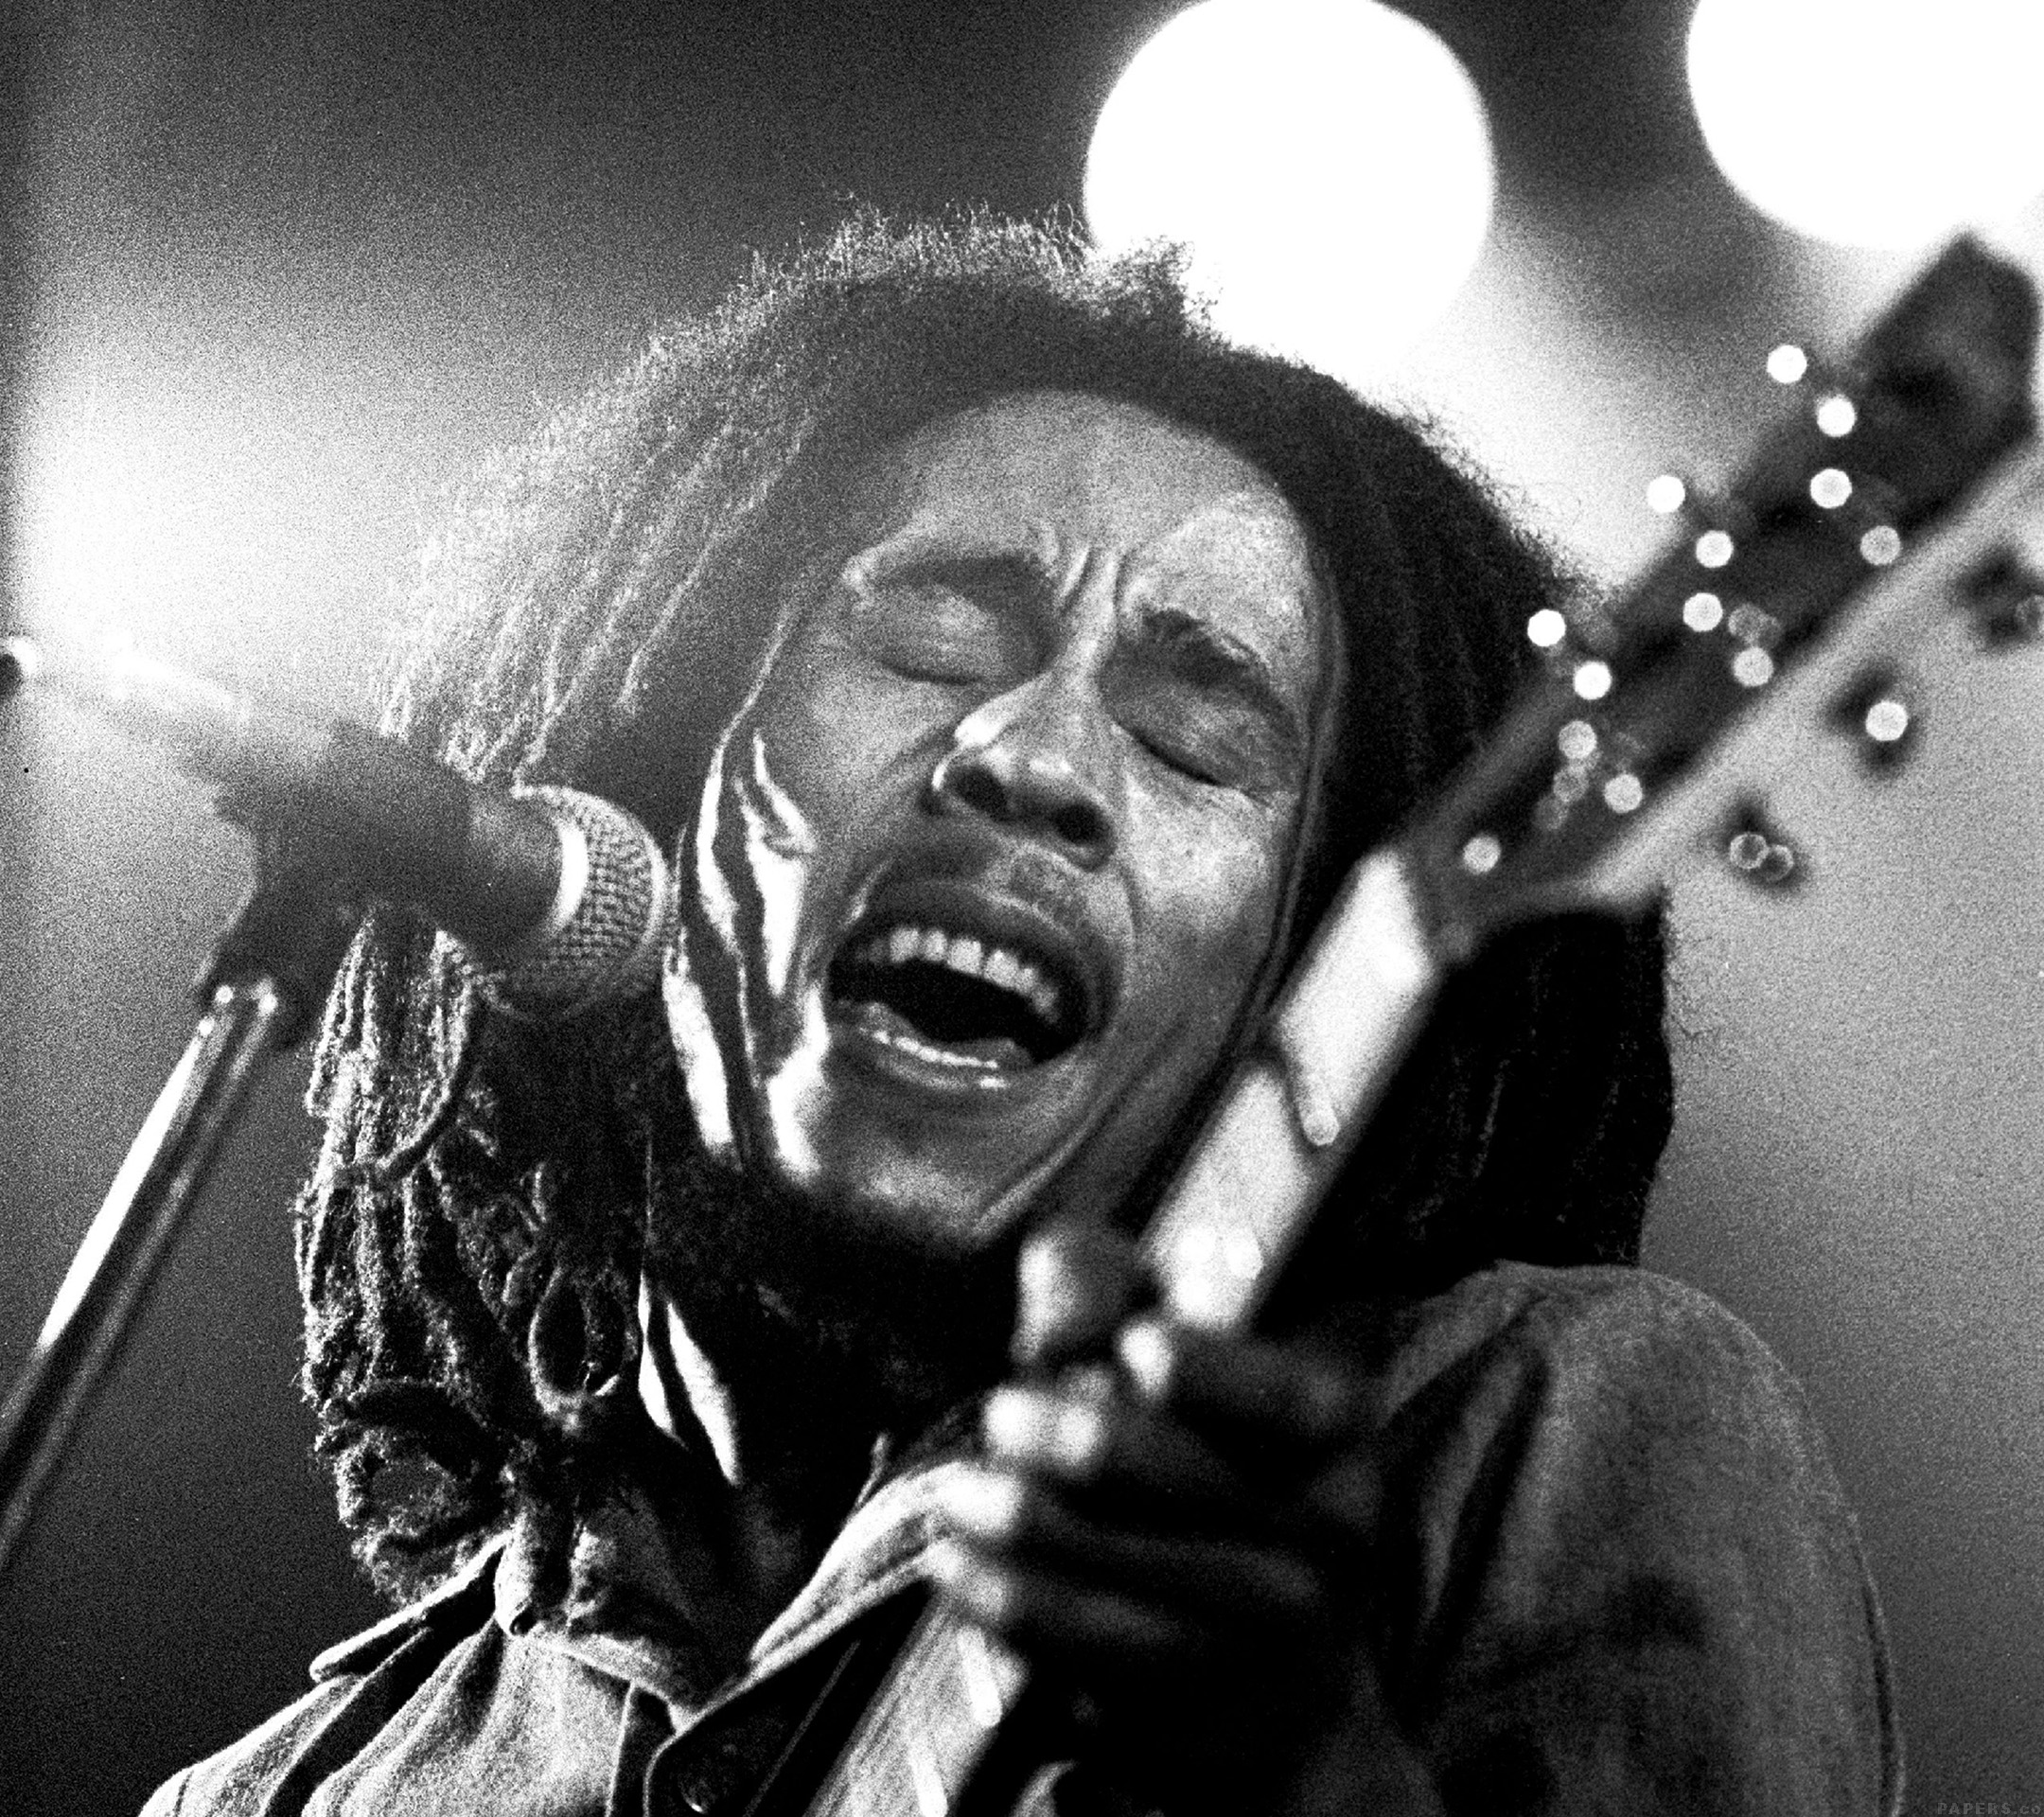 reggae music essay Below is an excellent essay example about such a music genre as reggae be sure to read this sample that can help you compose a winning paper.